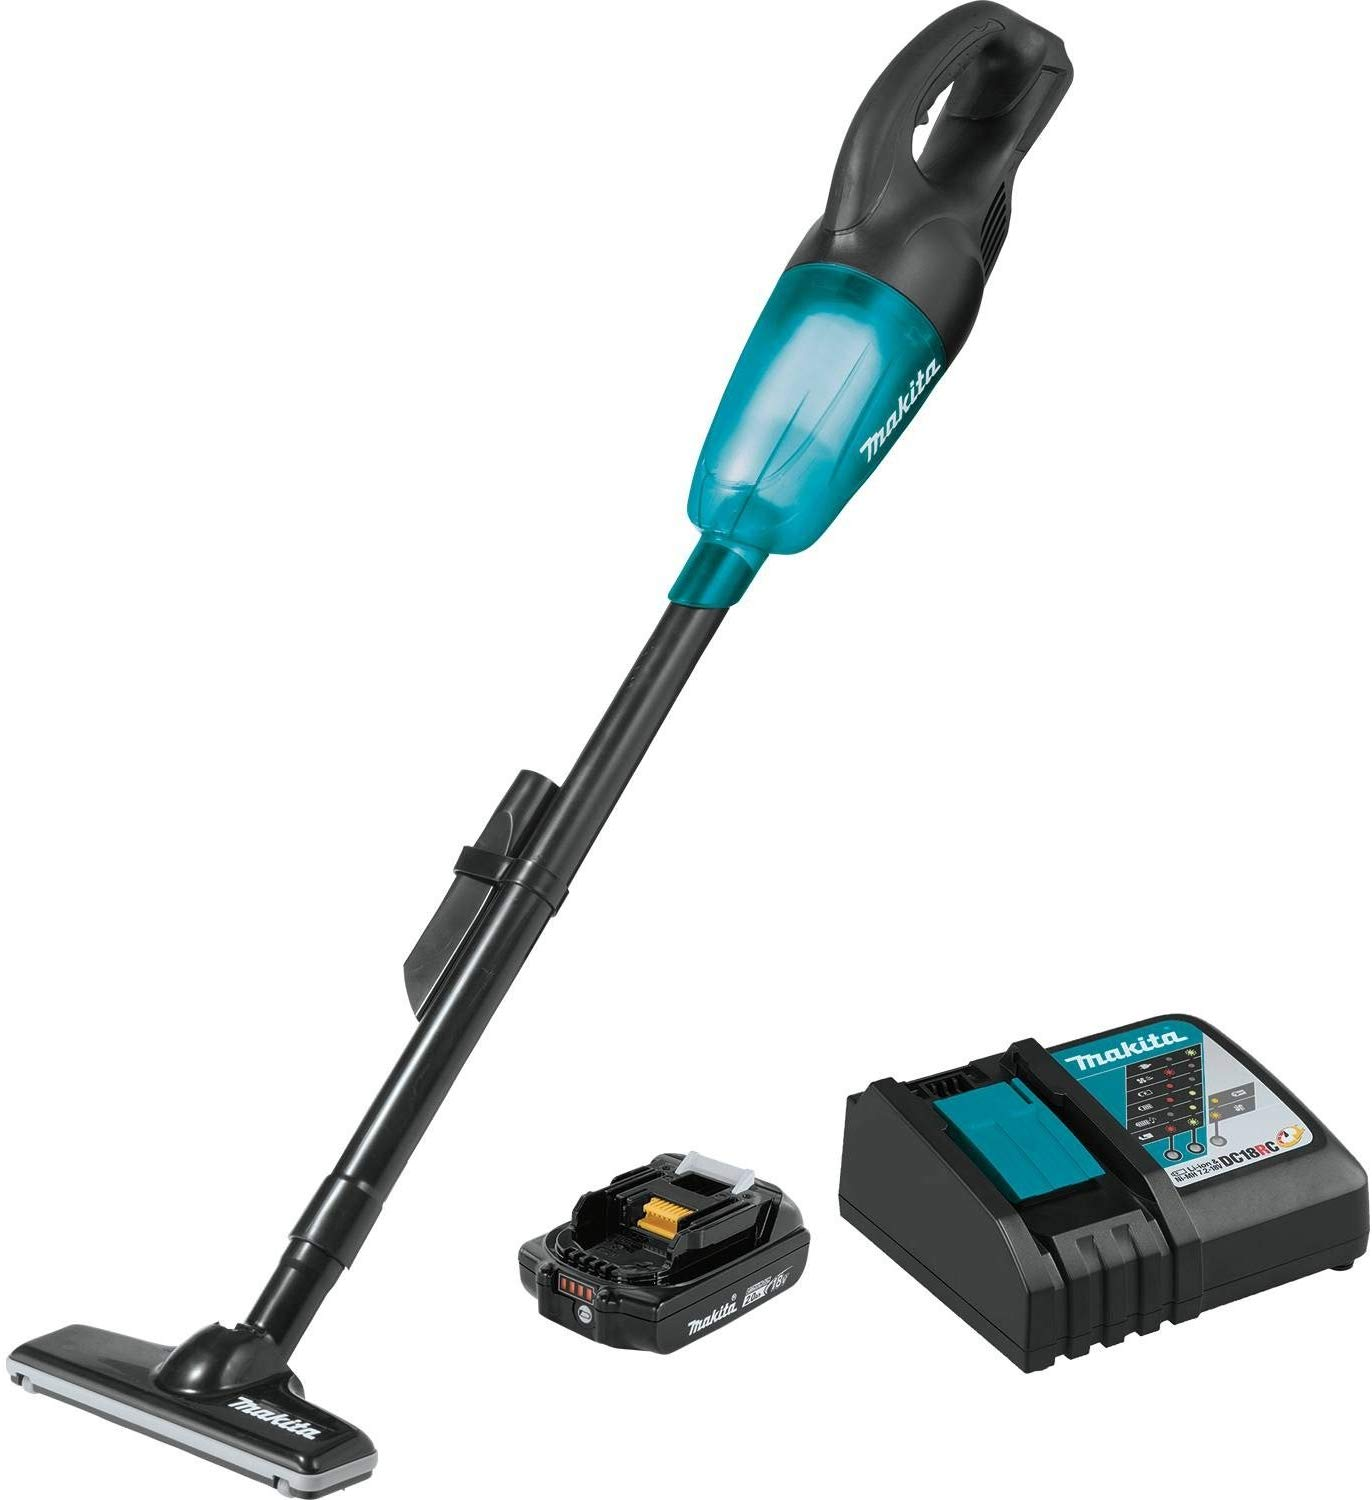 Best Electric Broom: Makita XLC02R1B